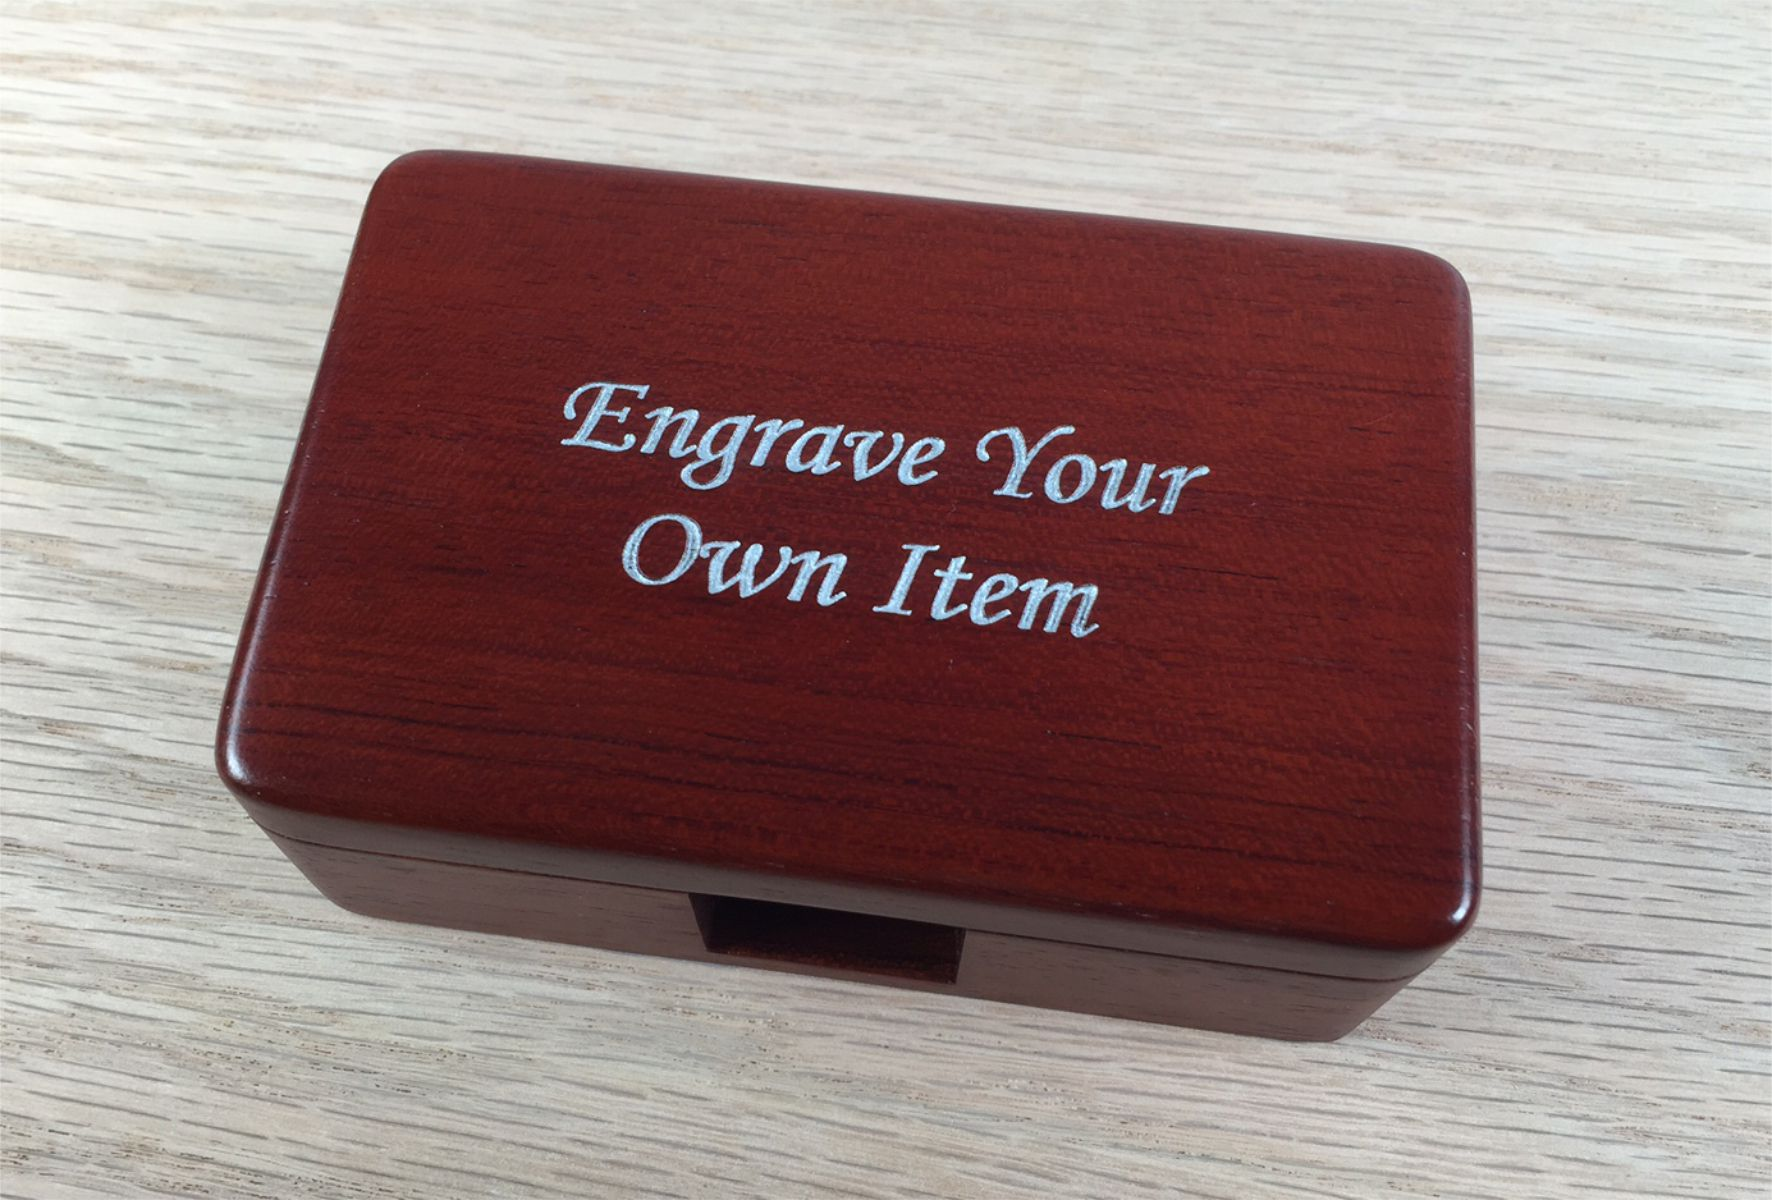 Engrave your own item with a message or image to make it truly unique and special